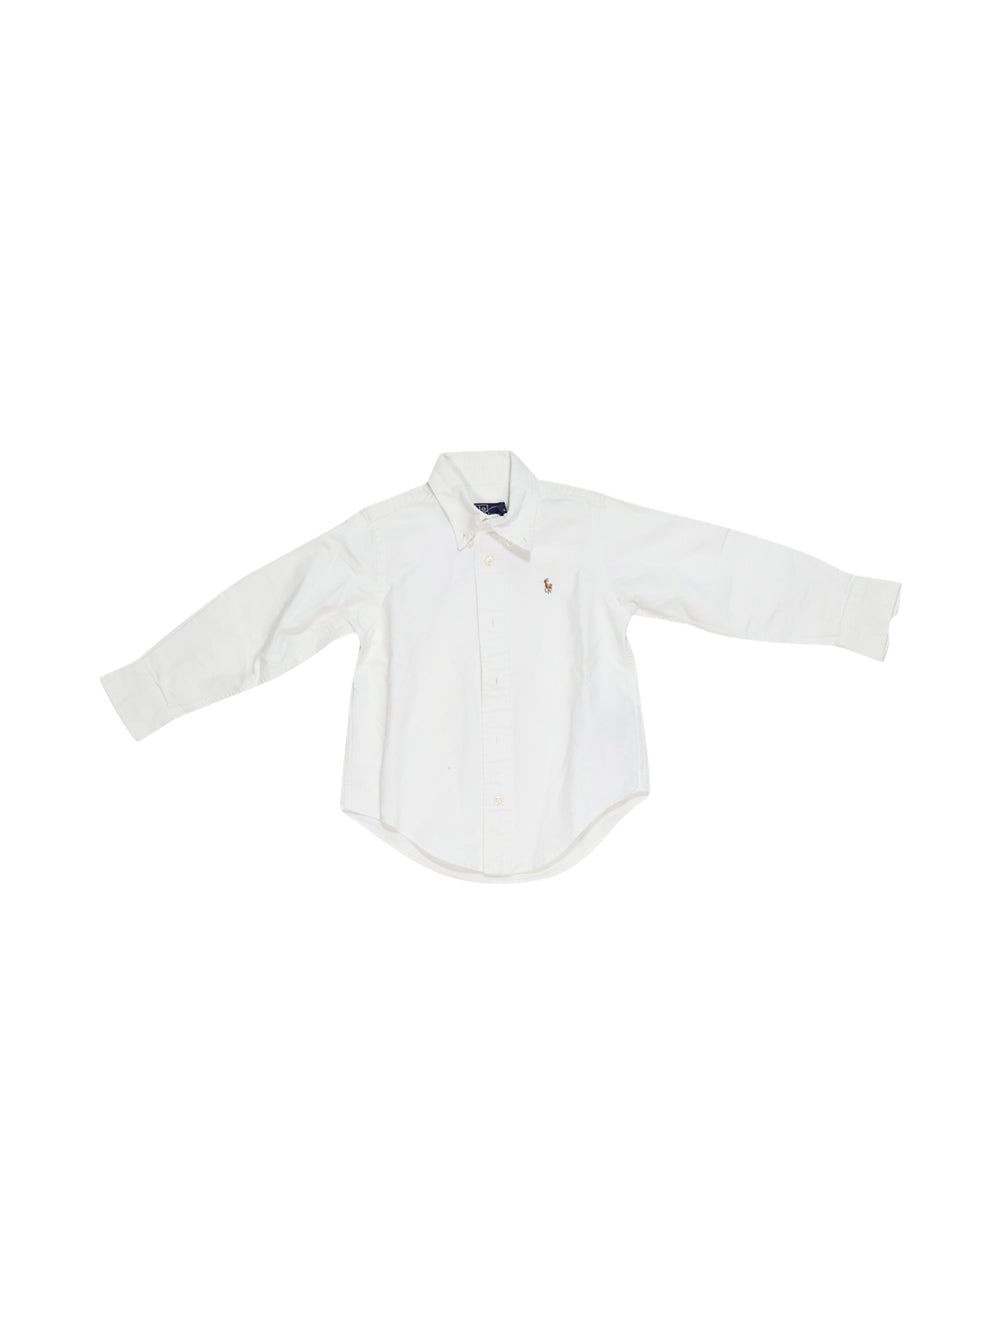 Front photo of Preloved Polo Ralph Lauren White Boy's shirt - size 18-24 mths